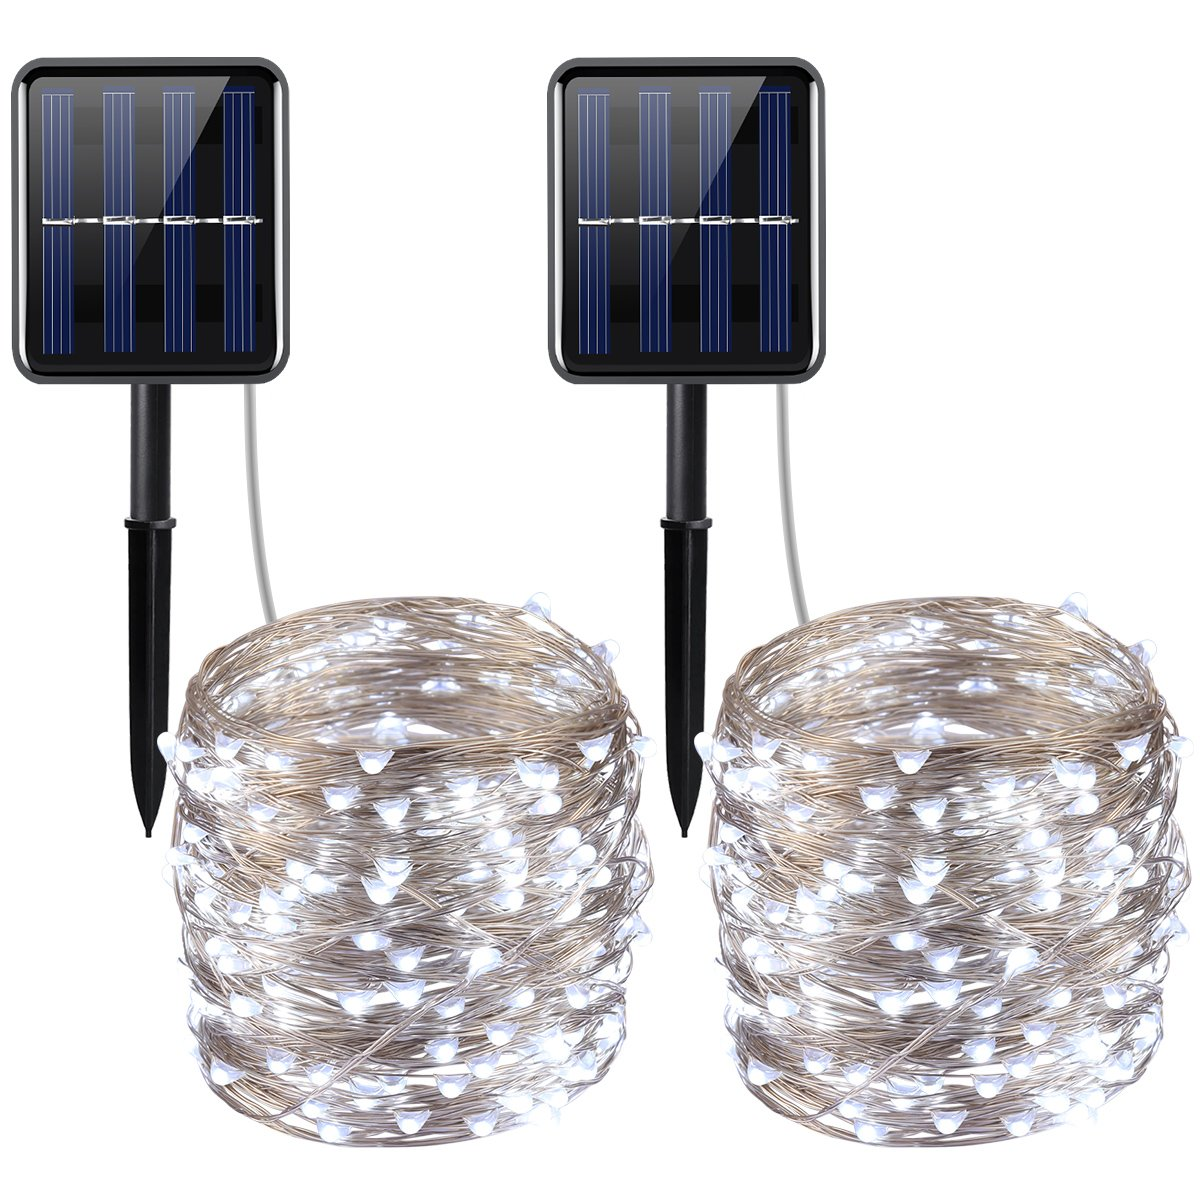 AMIR Solar Powered String Lights, 200 LED Copper Wire Lights, 72ft 8 Modes Starry Lights, Waterproof IP65 Fairy Christams Decorative Lights for Outdoor, Wedding, Homes, Party (White - Pack of 2) by AMIR